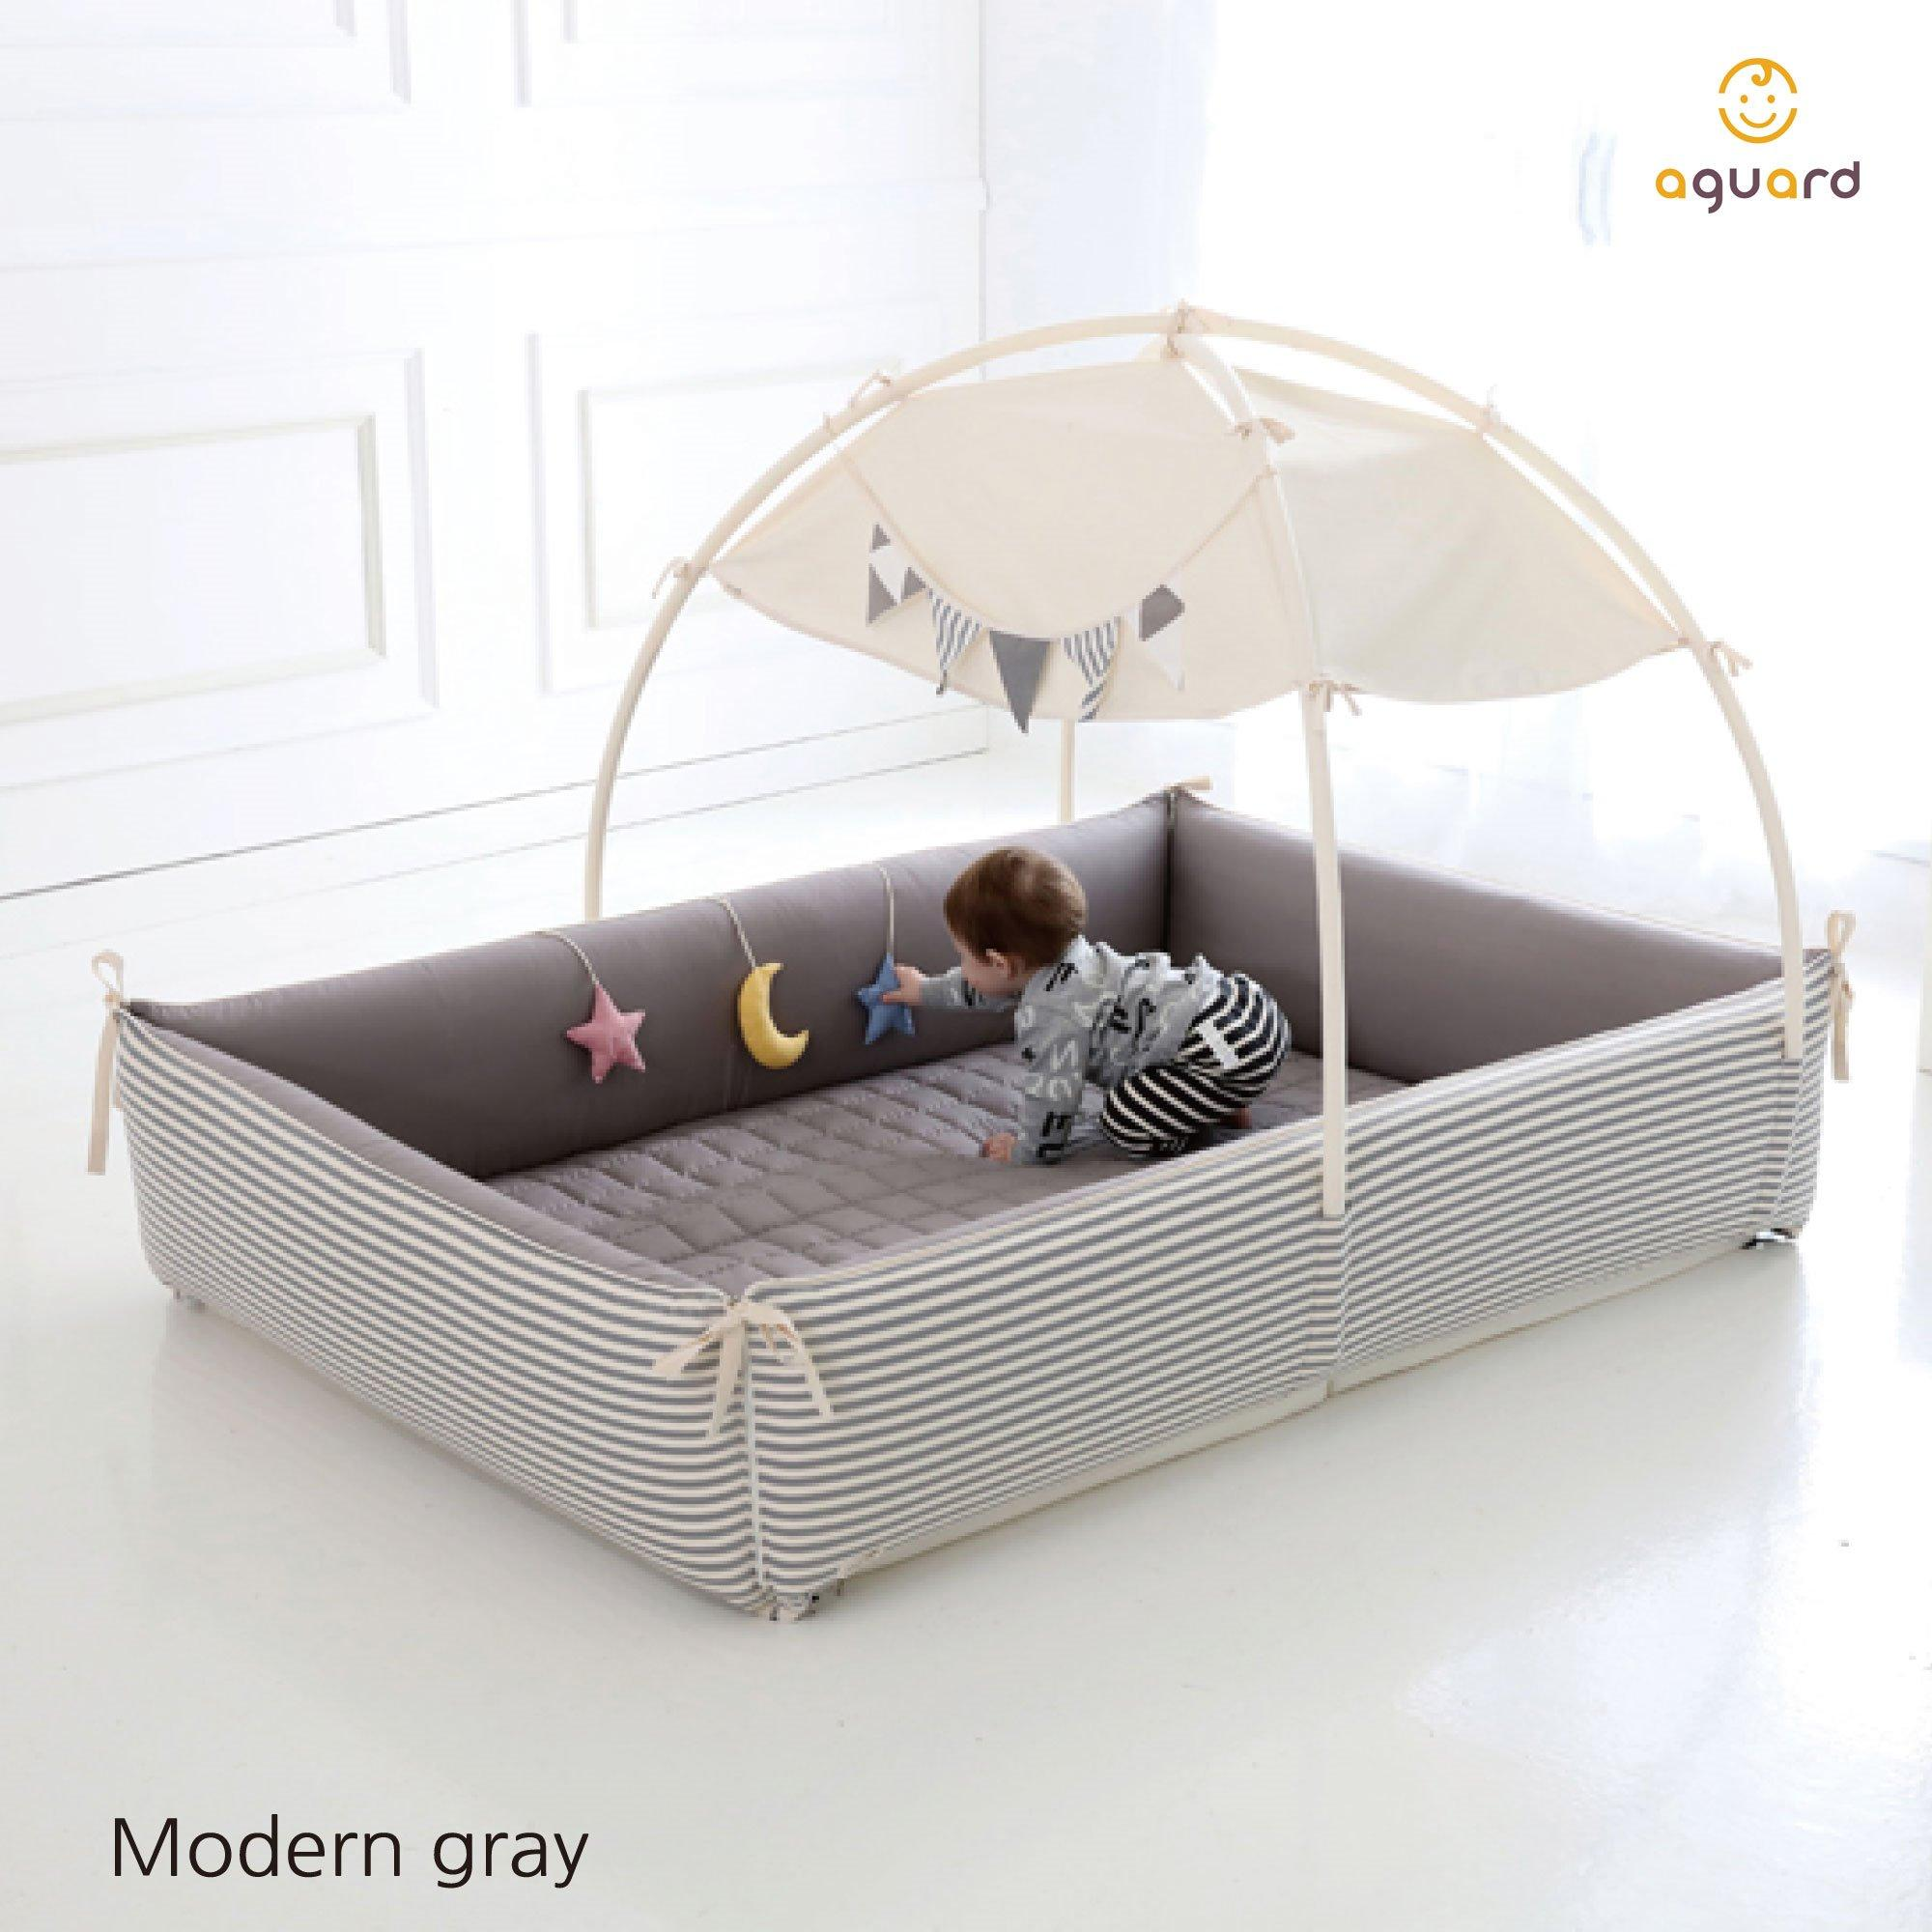 AGUARD Bumper Bed (L) - Modern Grey [EXCLUSIVE DEA